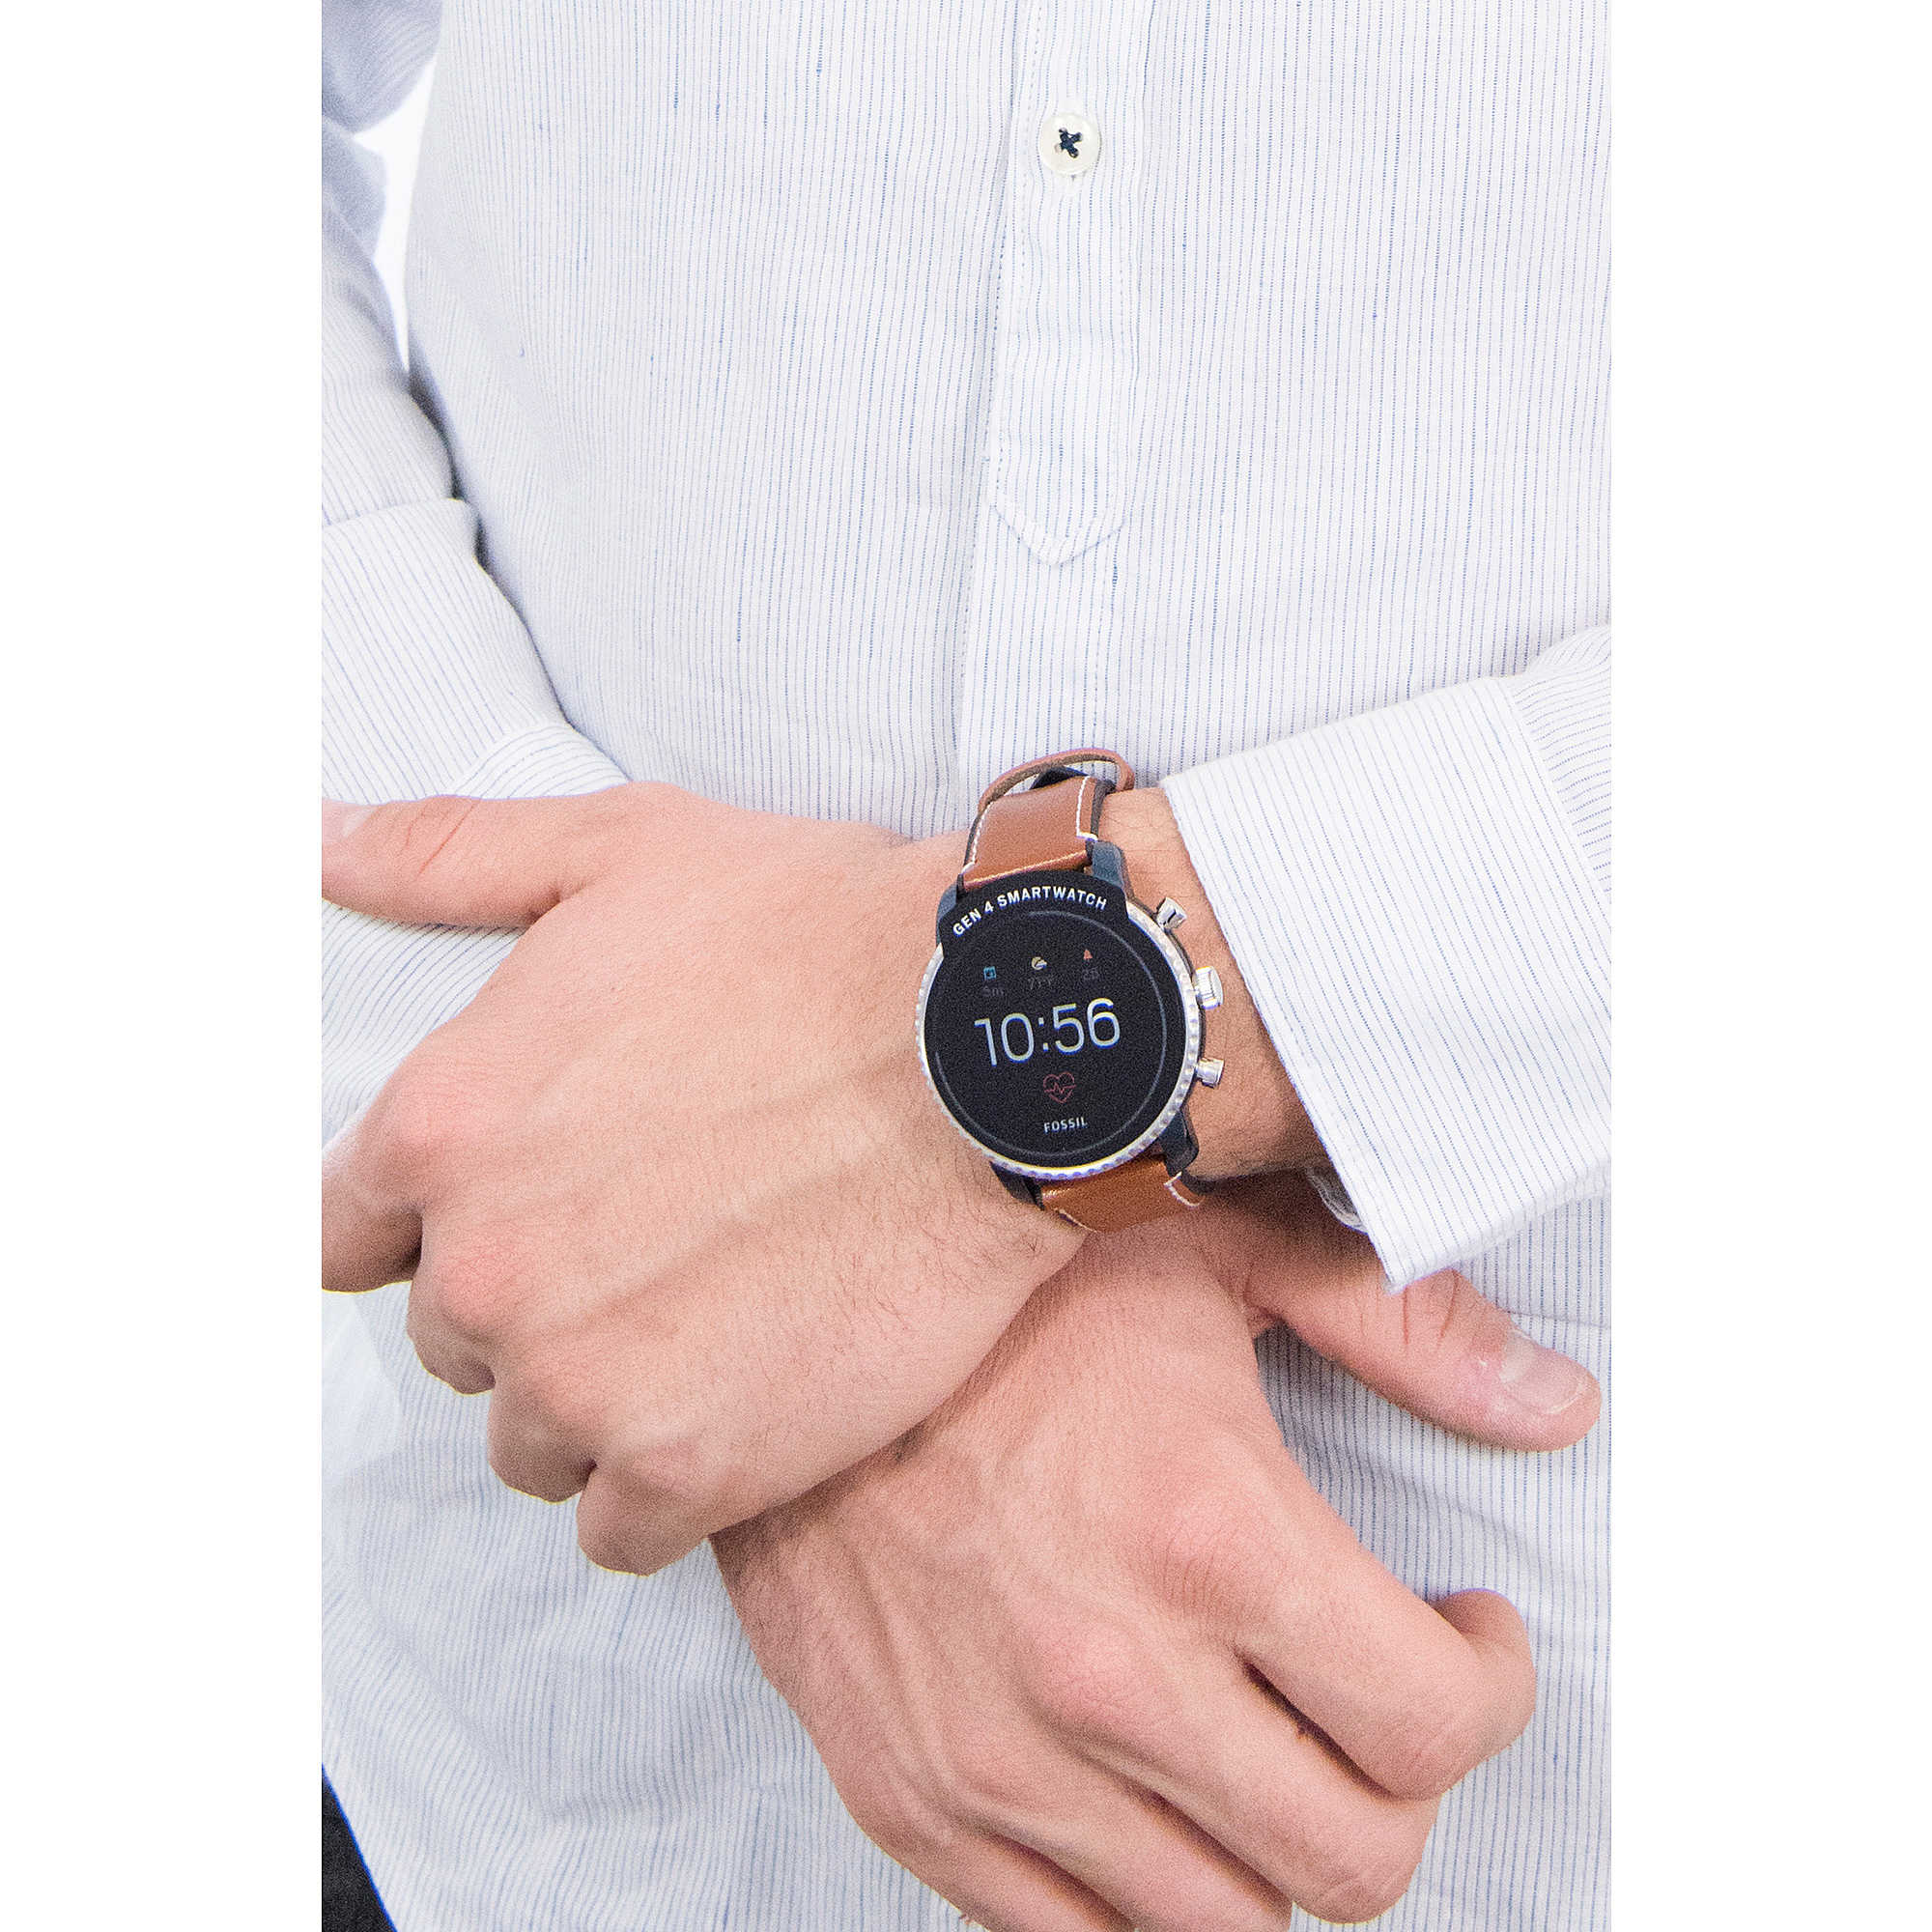 Smartwatch Fossil Homme Montre Smartwatches Ftw4016 N0Ovnw8m